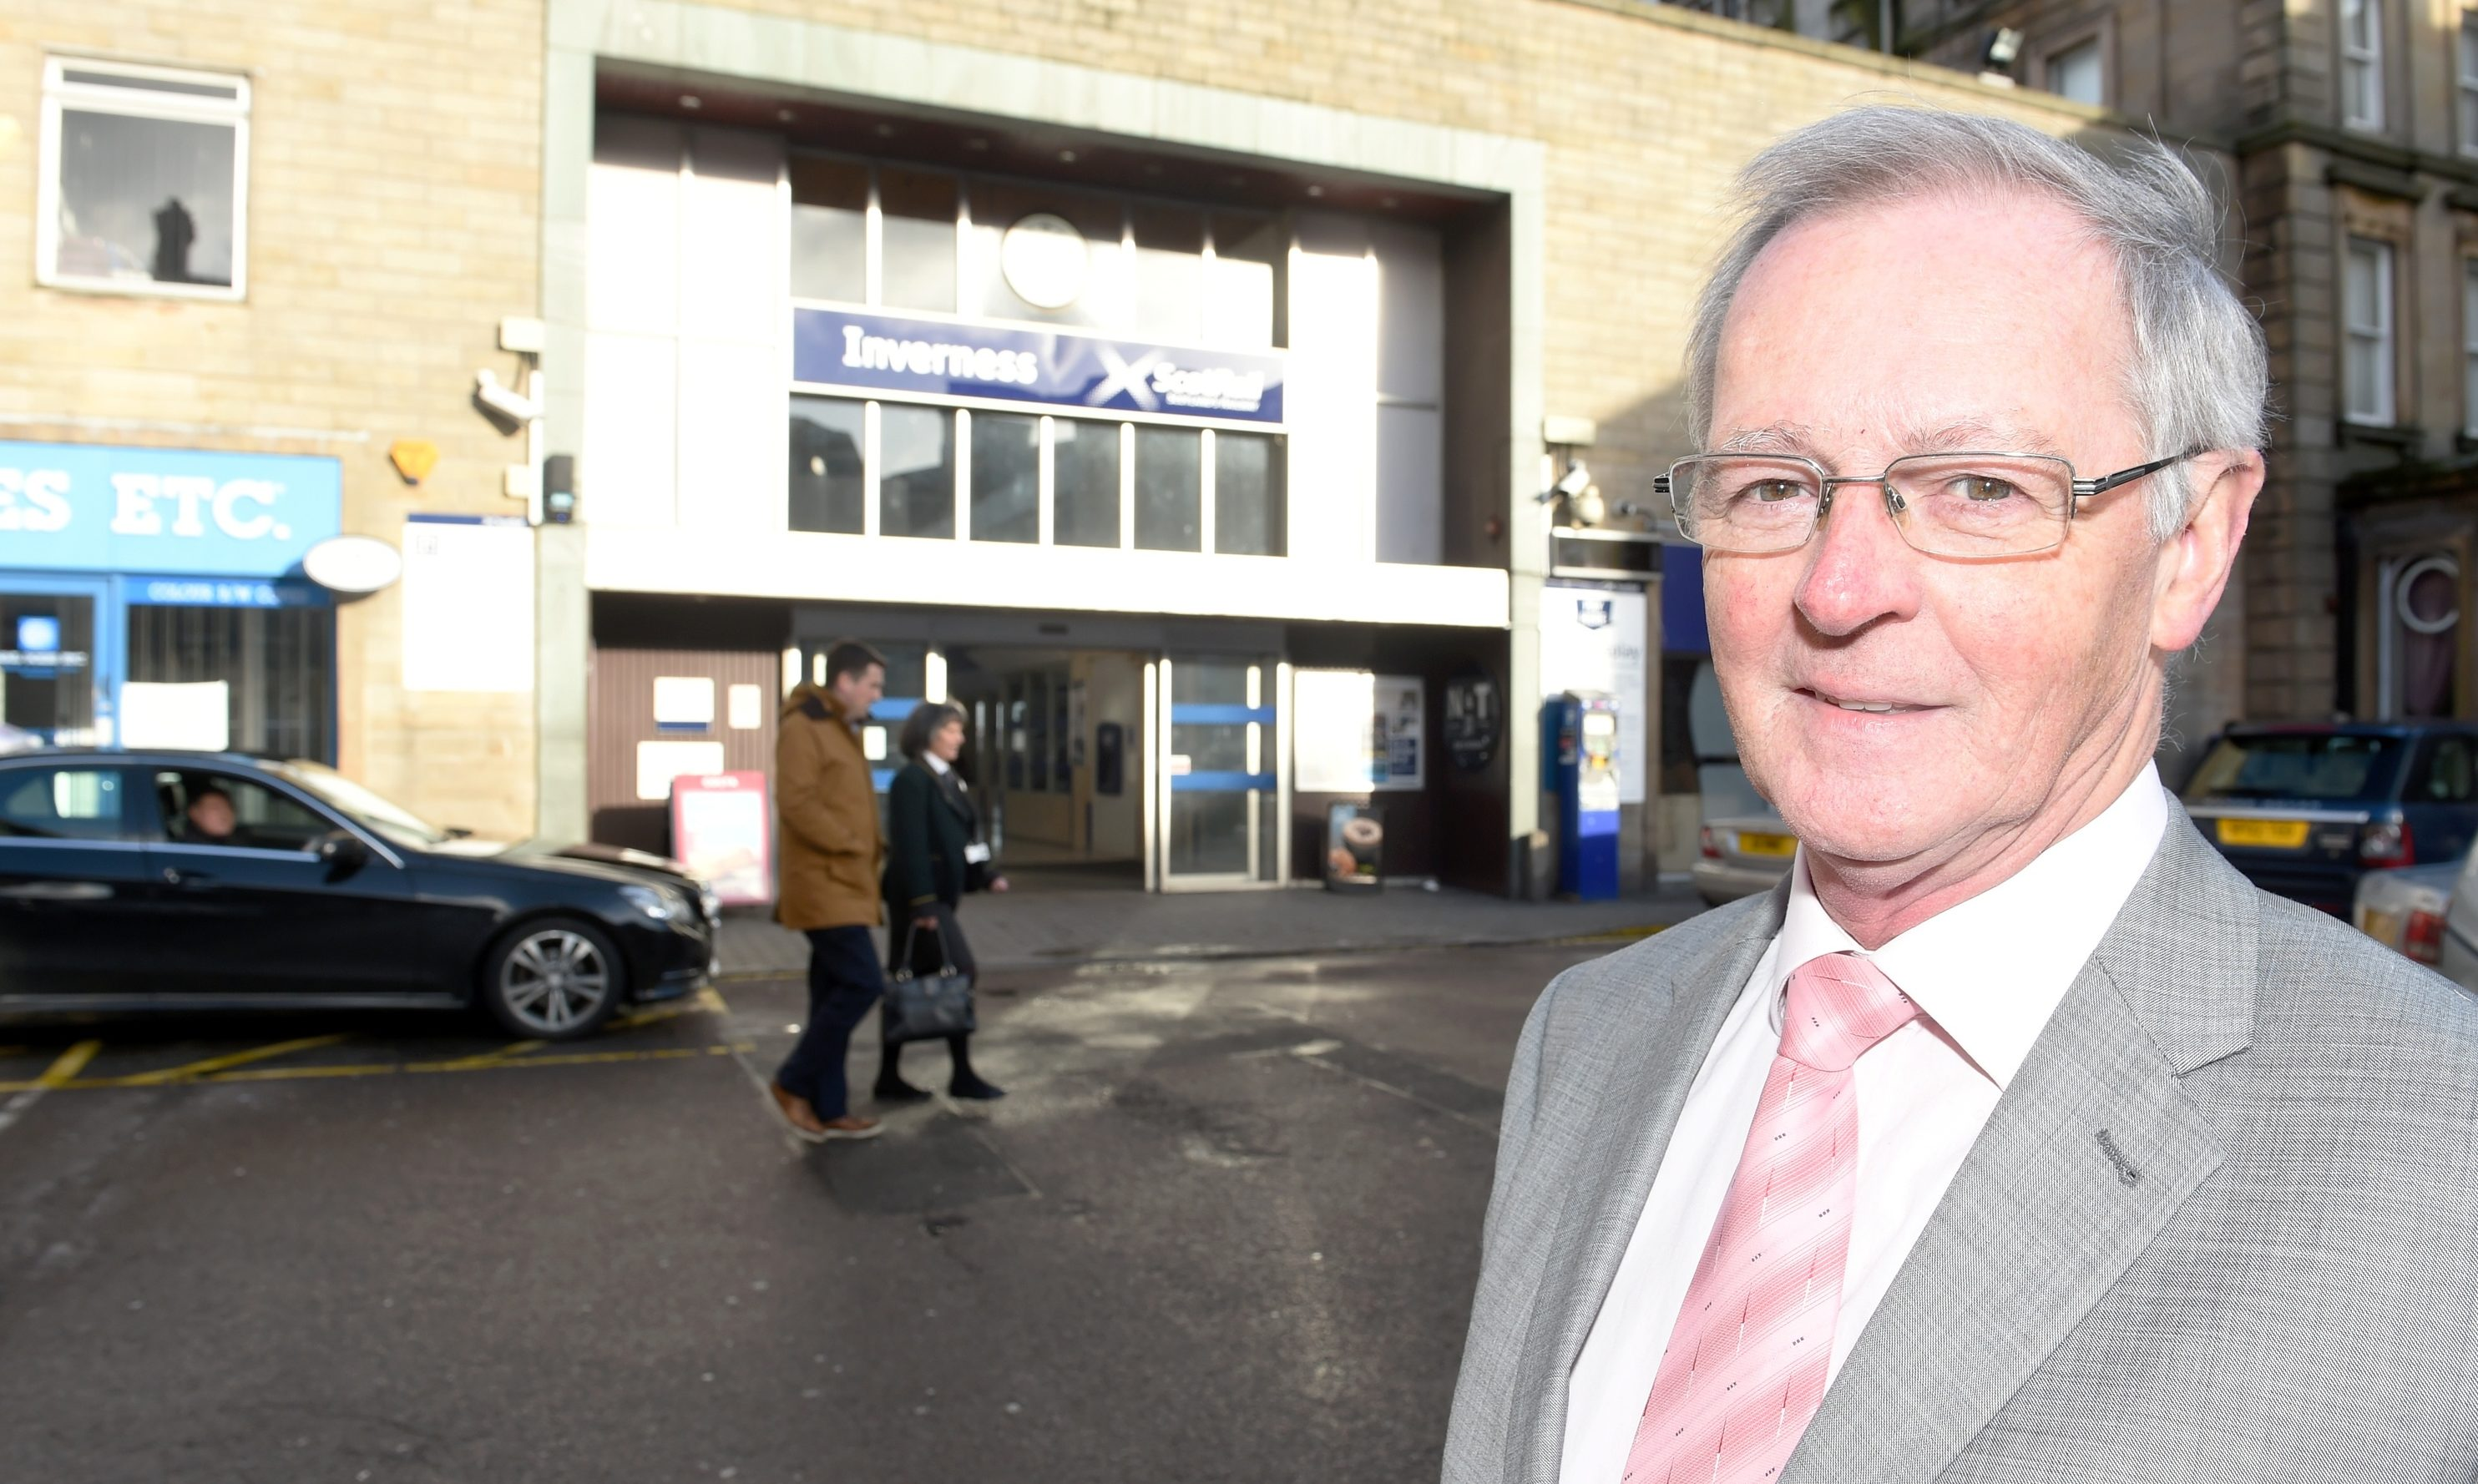 Councillor Allan Henderson, Chairman of Hitrans, is delighted to see the Inverness scheme moving forward.